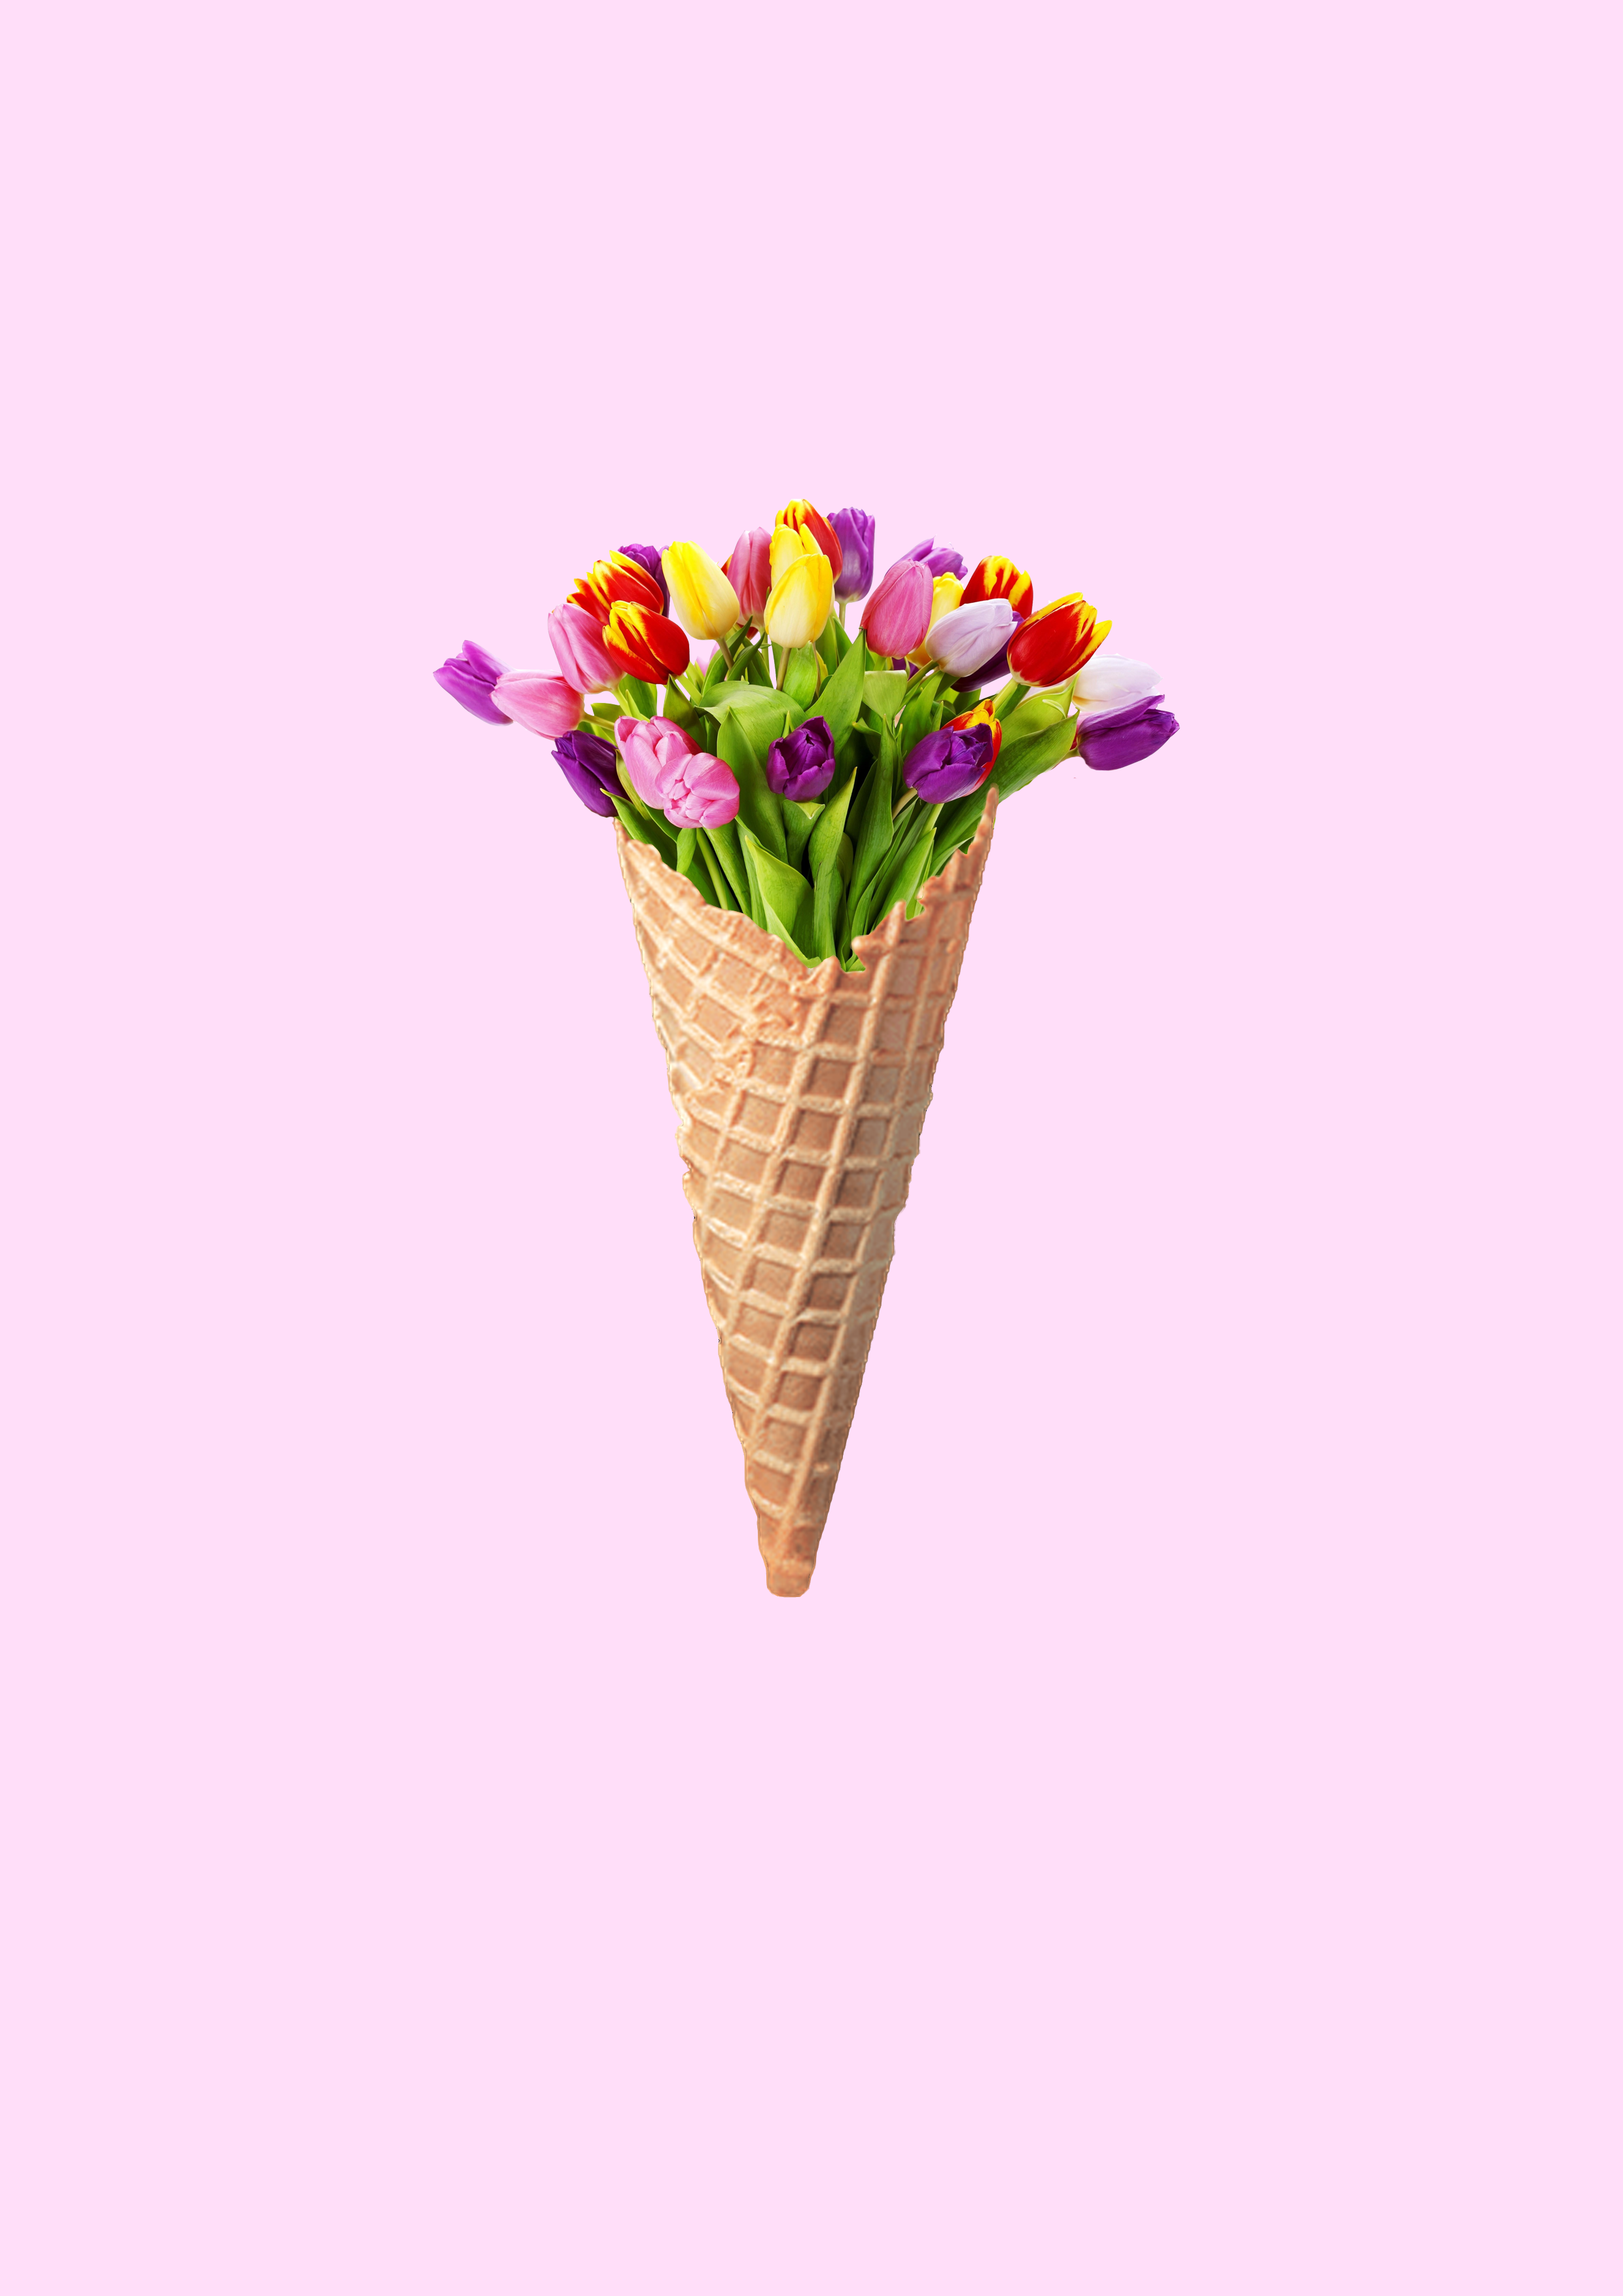 photoshop how to make a cone